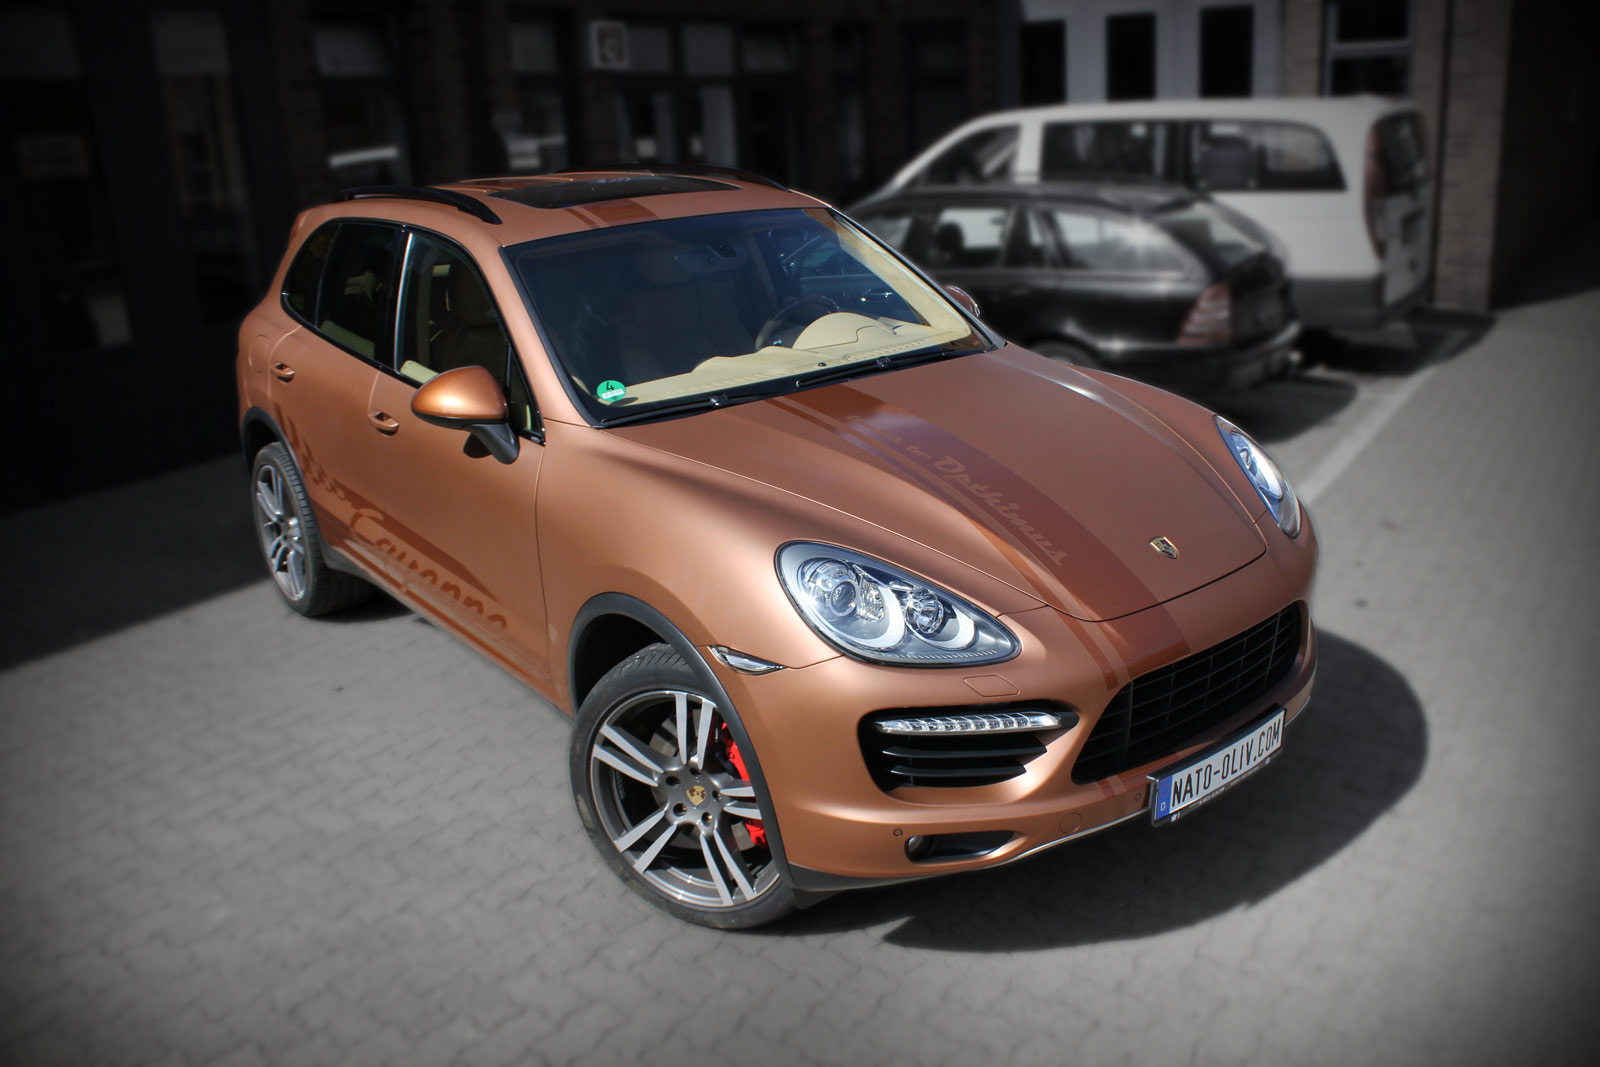 Porsche Cayenne Folierung in bronze matt metallic.